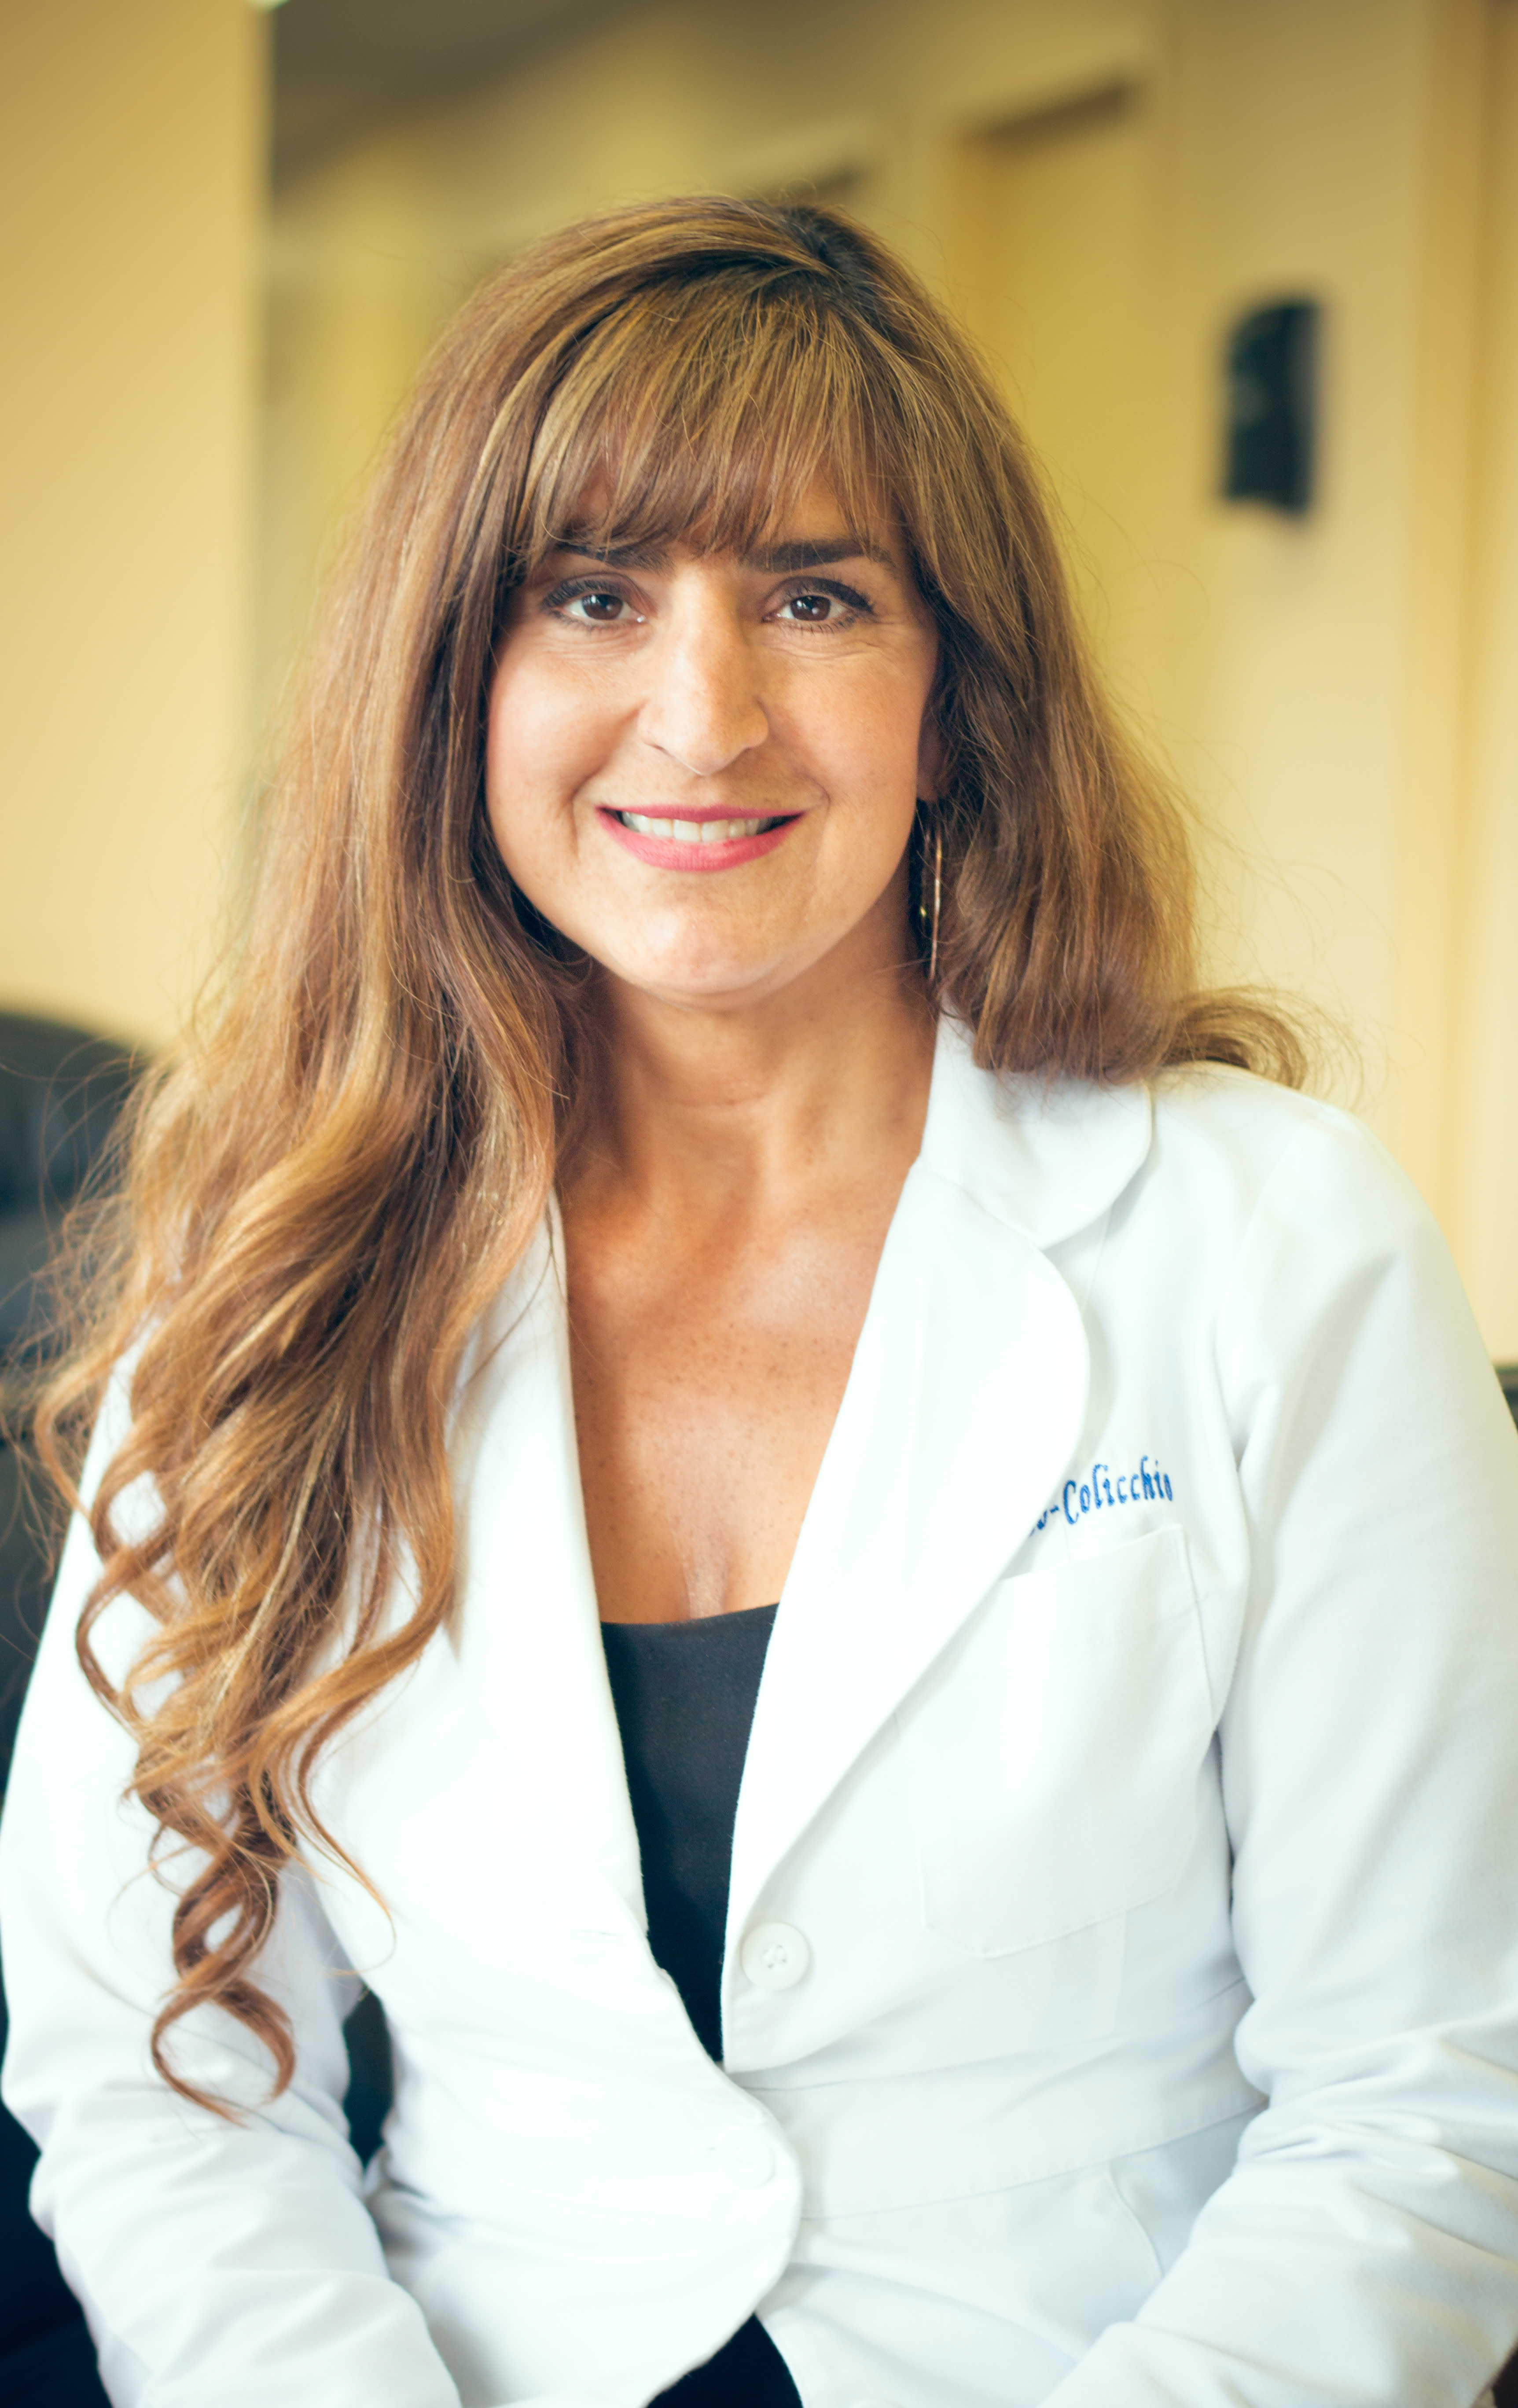 Laila M Colicchio, MD Optometry